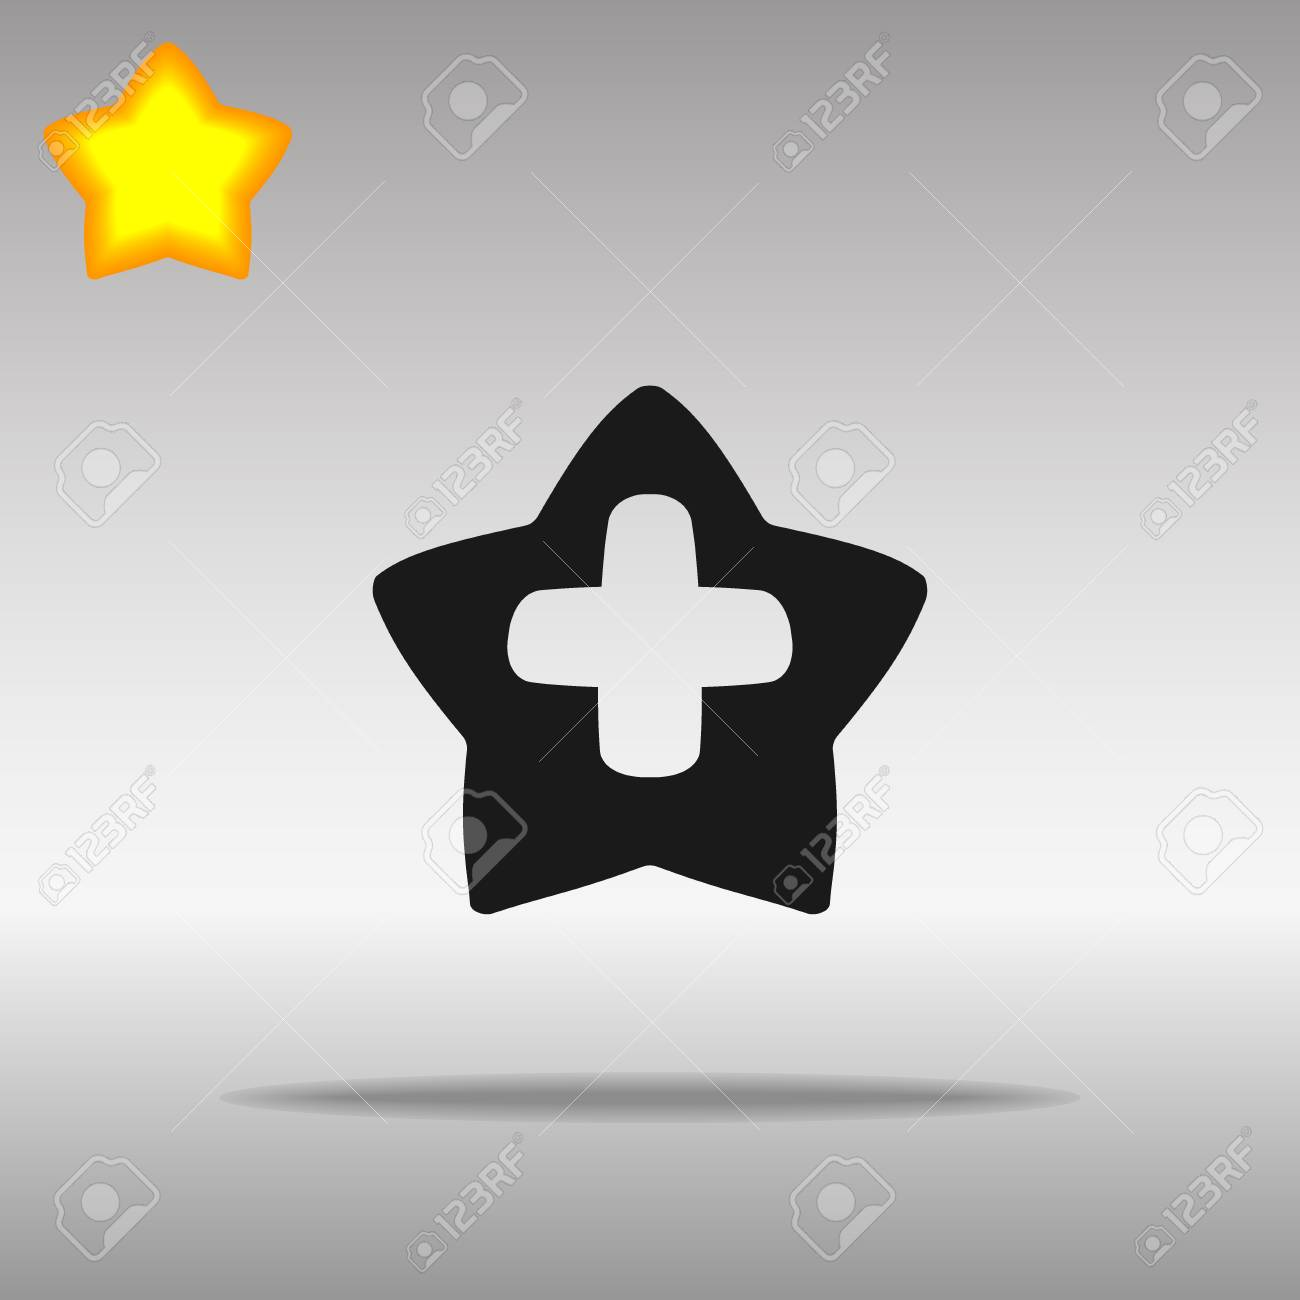 Star cross medicine black Icon button logo symbol concept high quality on the gray background - 82176449